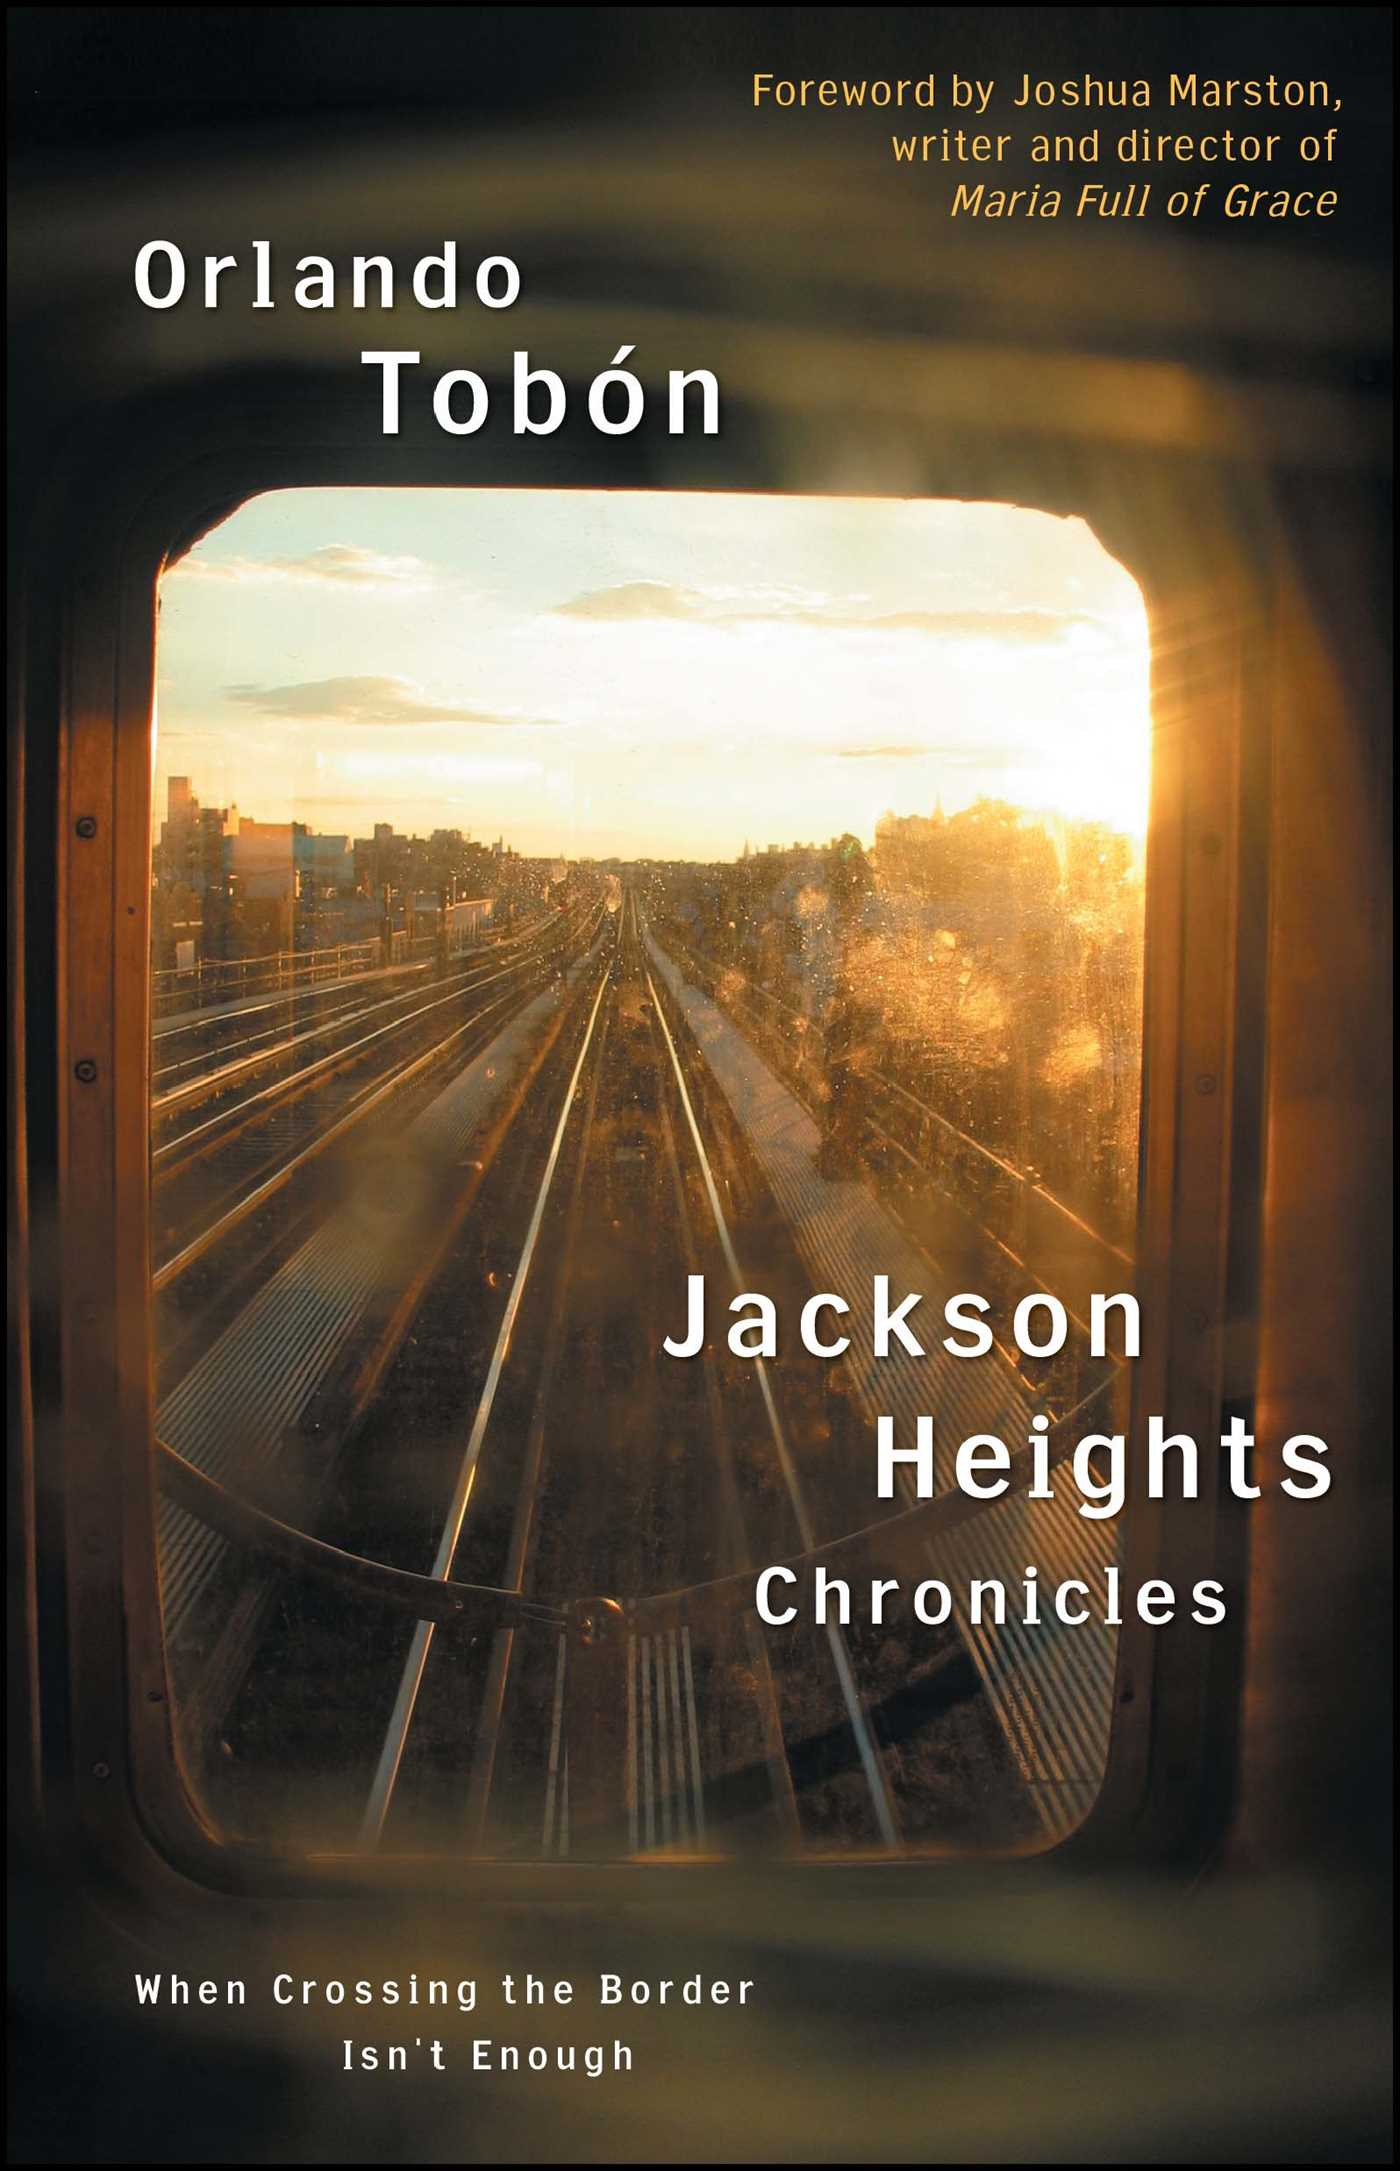 Jackson-heights-chronicles-9781416523215_hr